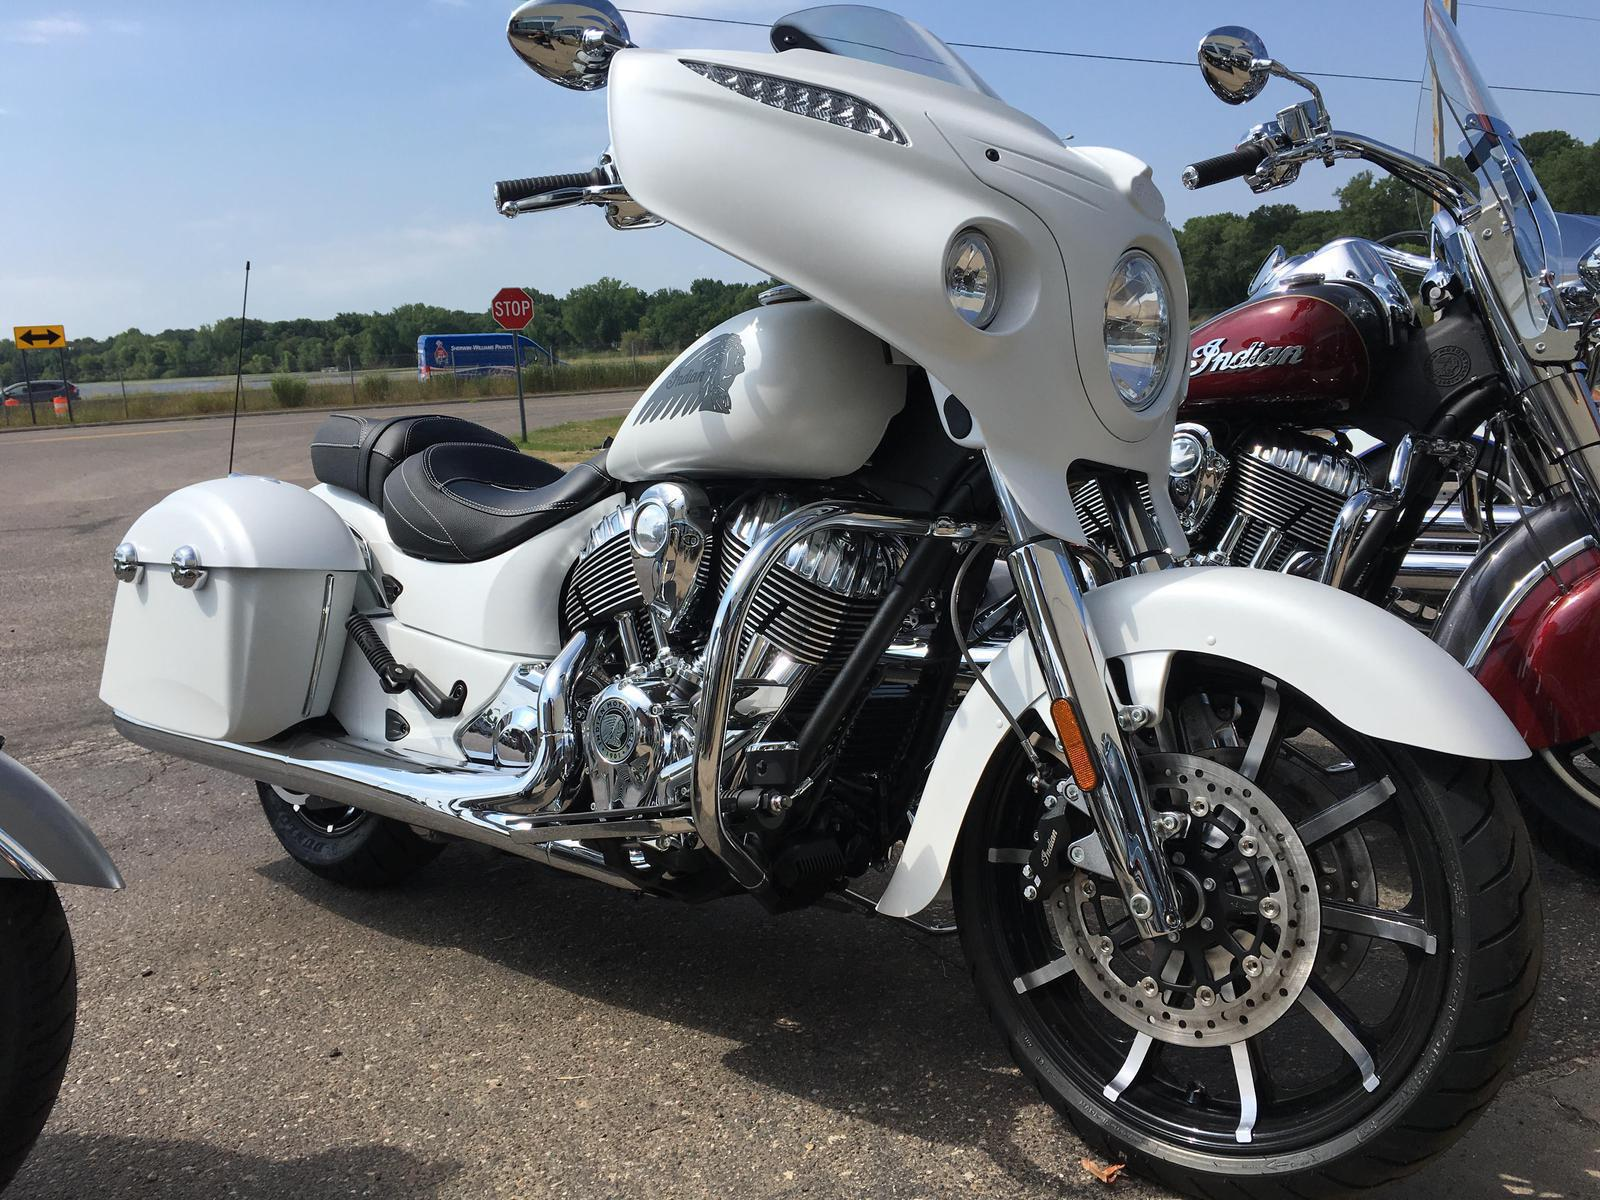 Inventory From Indian Motorcycle Of The Twin